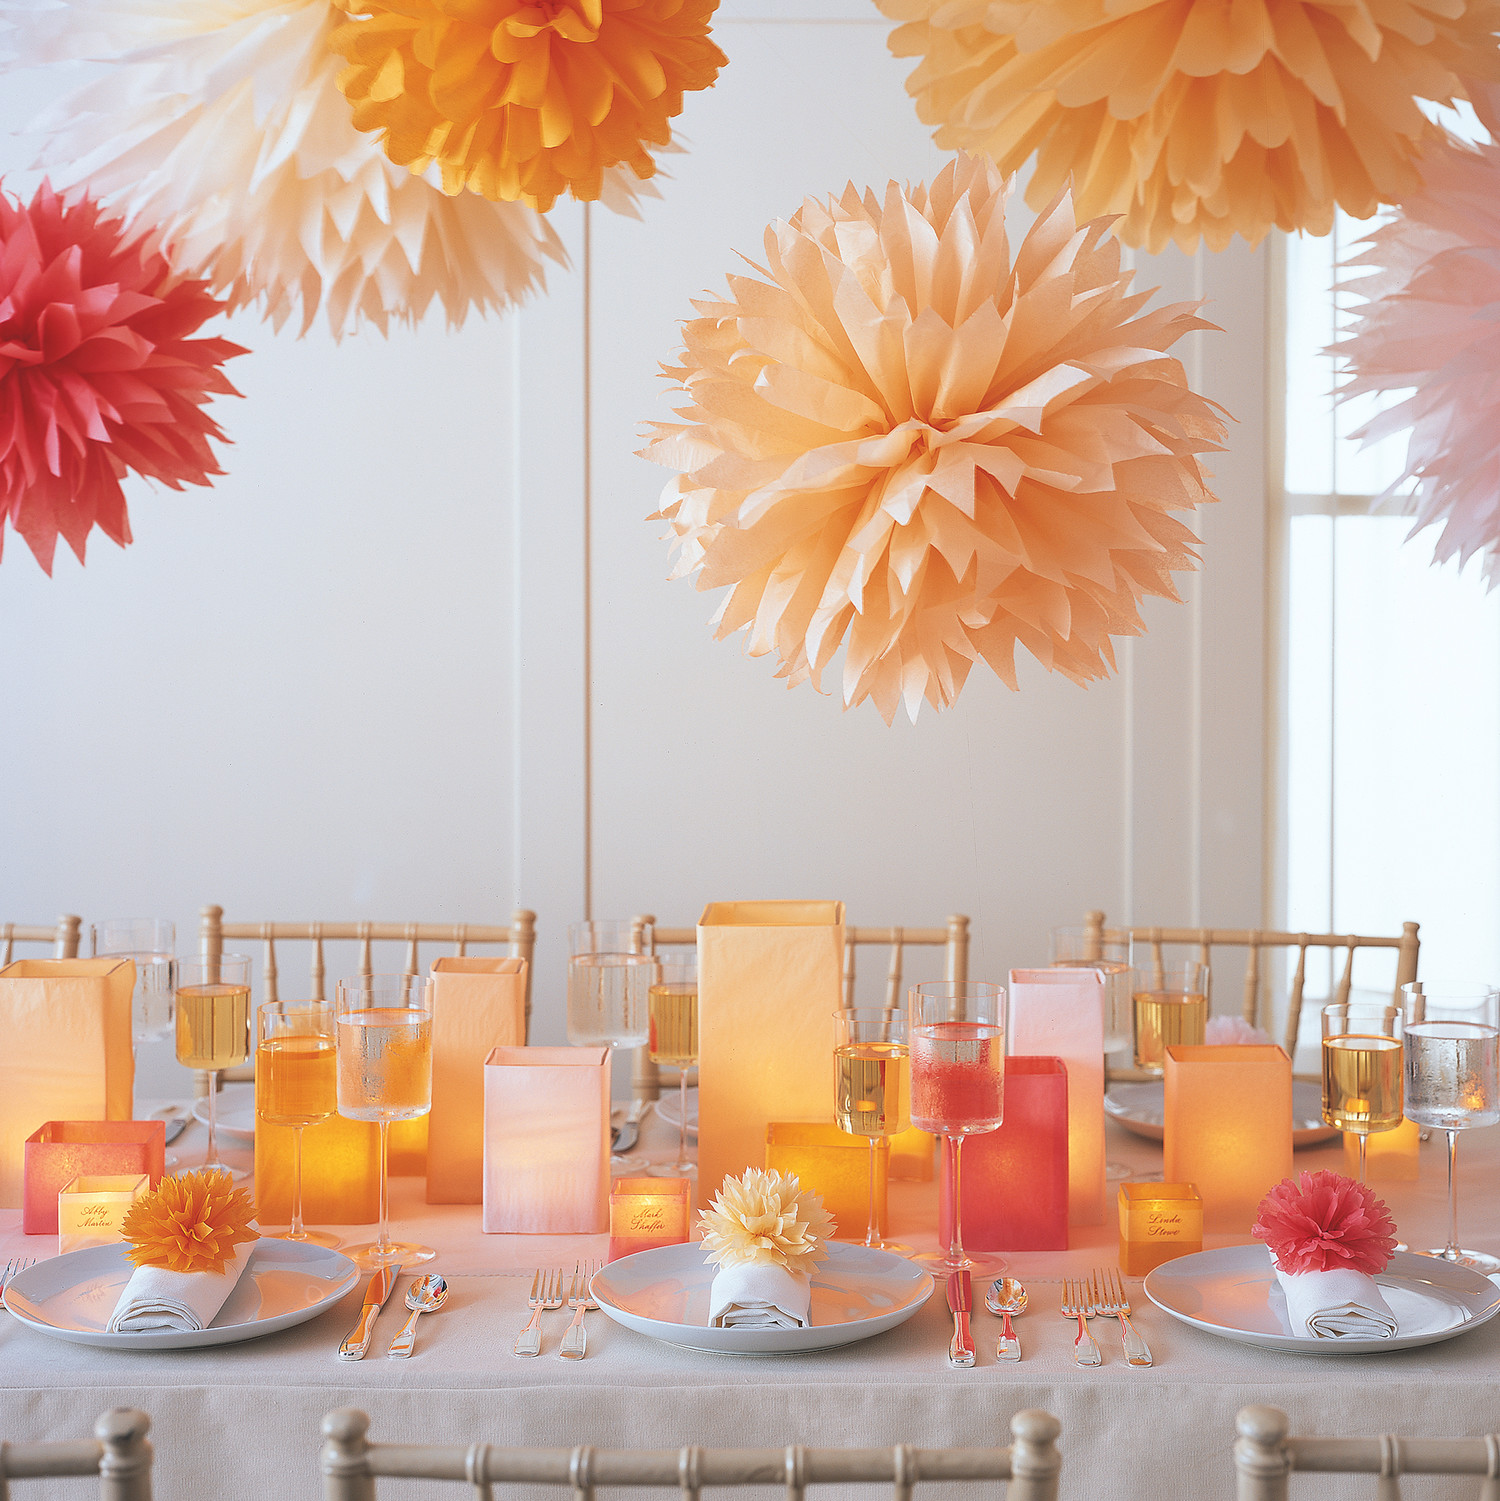 pom poms and luminarias video martha stewart. Black Bedroom Furniture Sets. Home Design Ideas